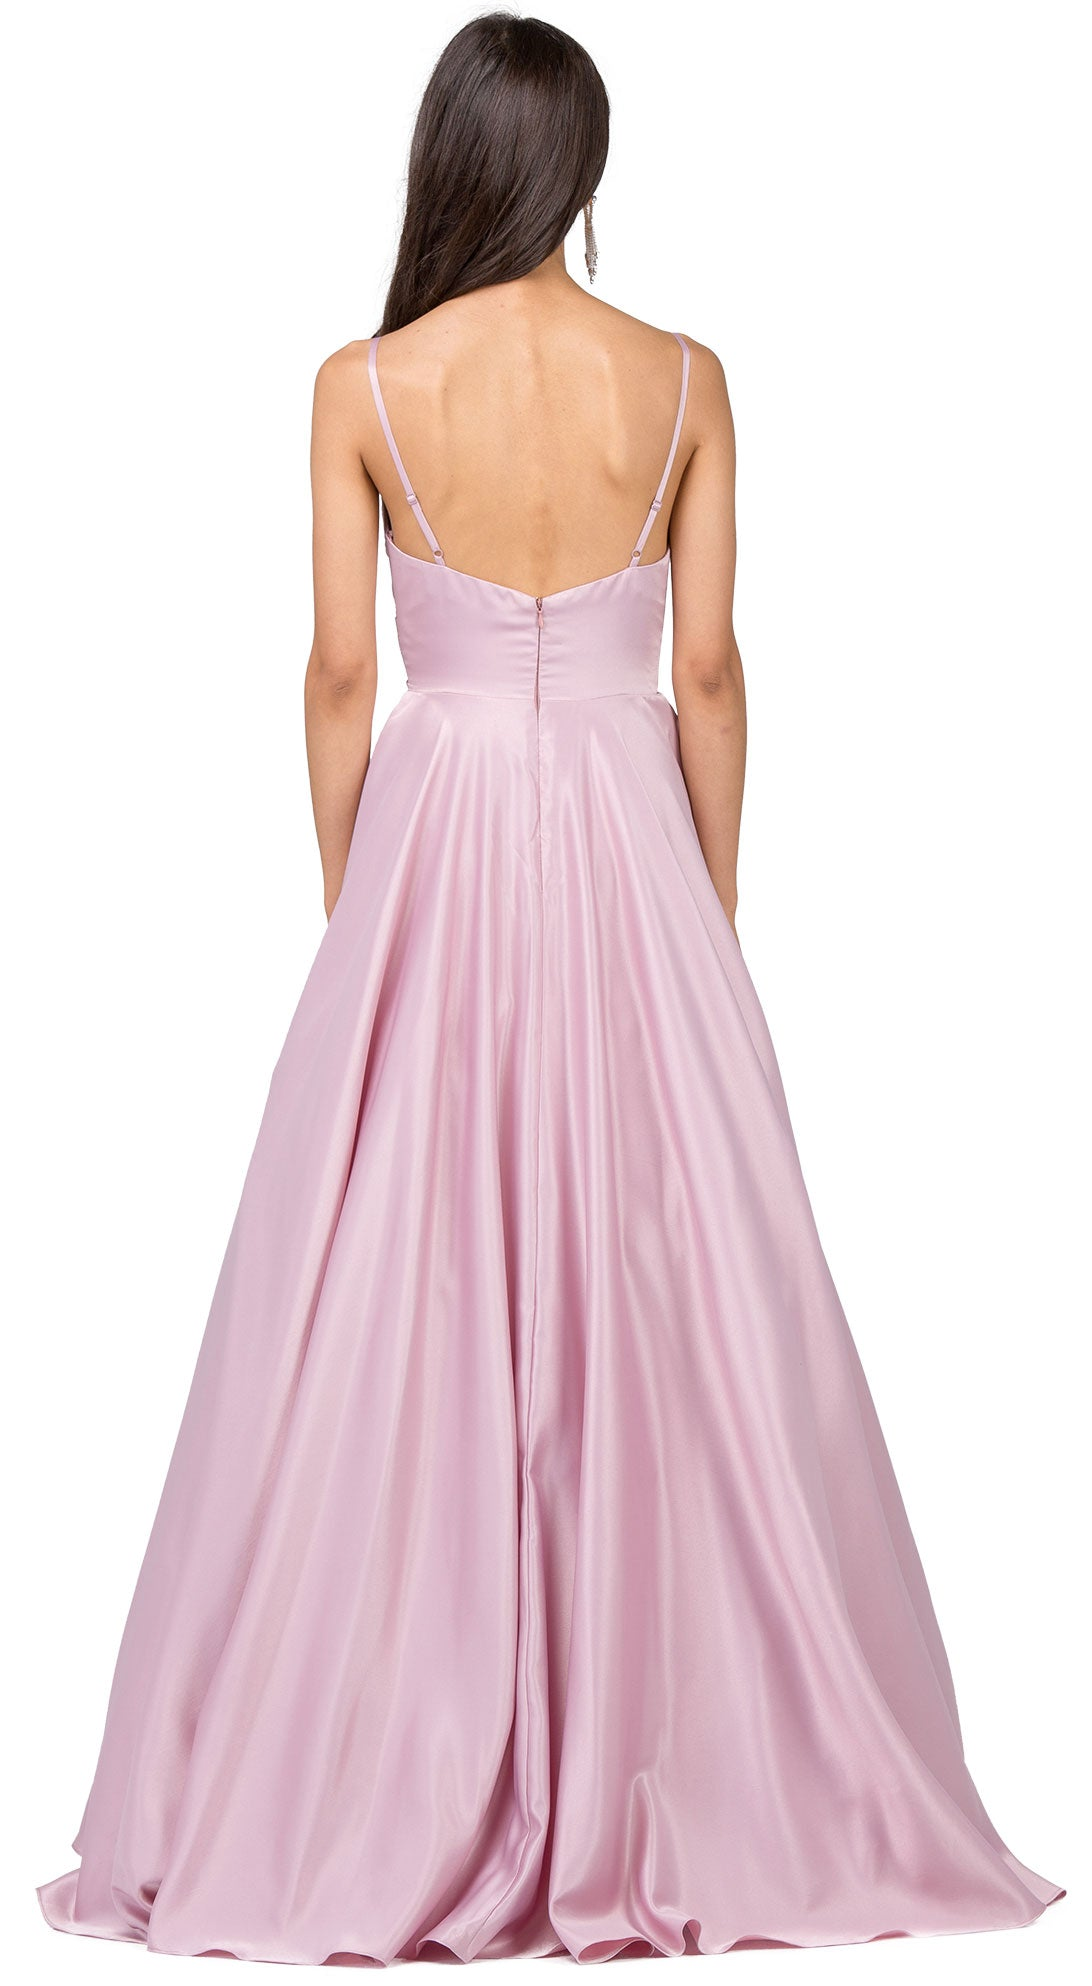 Image of V-neck Adjustable Straps Pleated Bust Long Prom Dress back in Dusty Pink